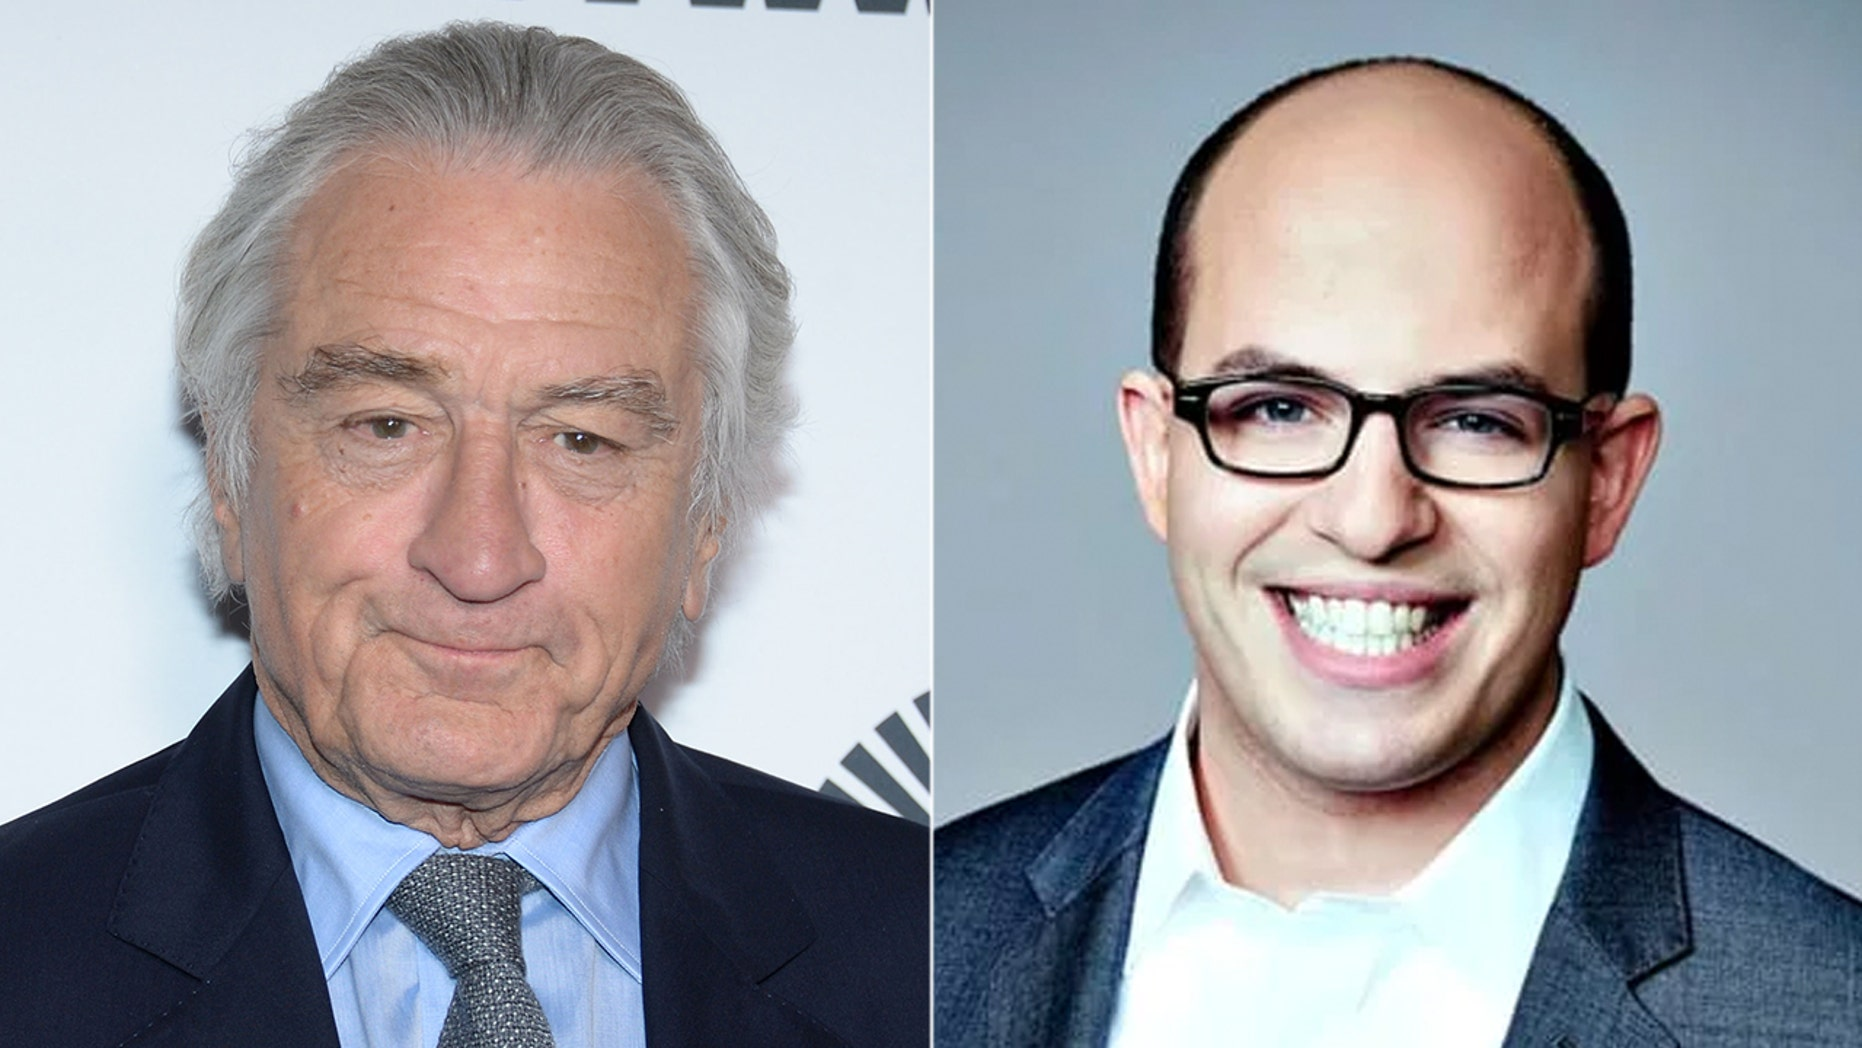 Robert De Niro used profanity during an interview with CNN's Brian Stelter.